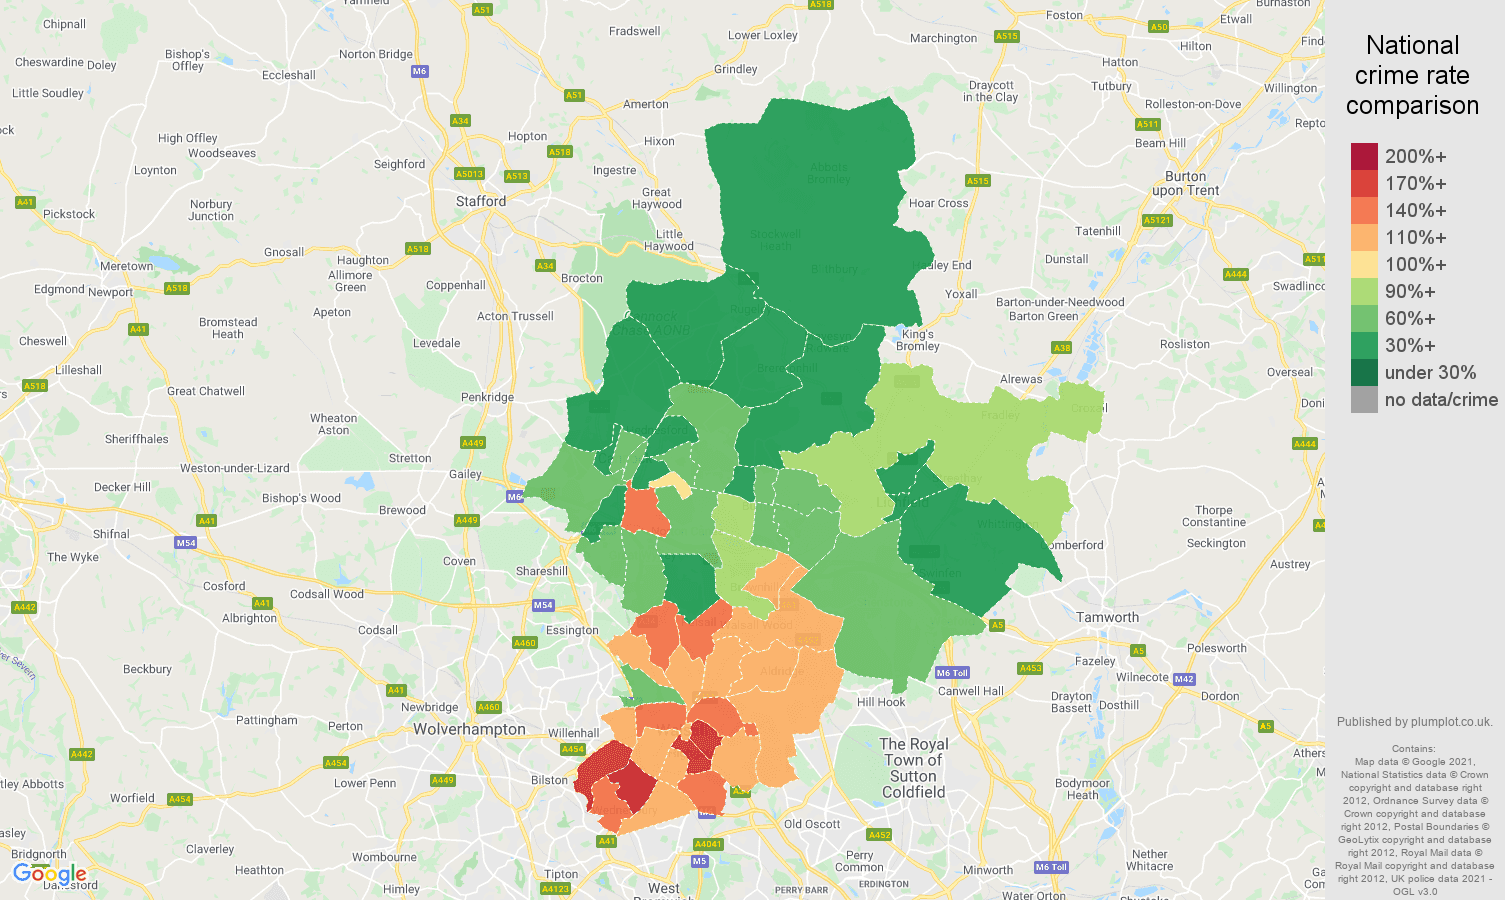 Walsall burglary crime statistics in maps and graphs